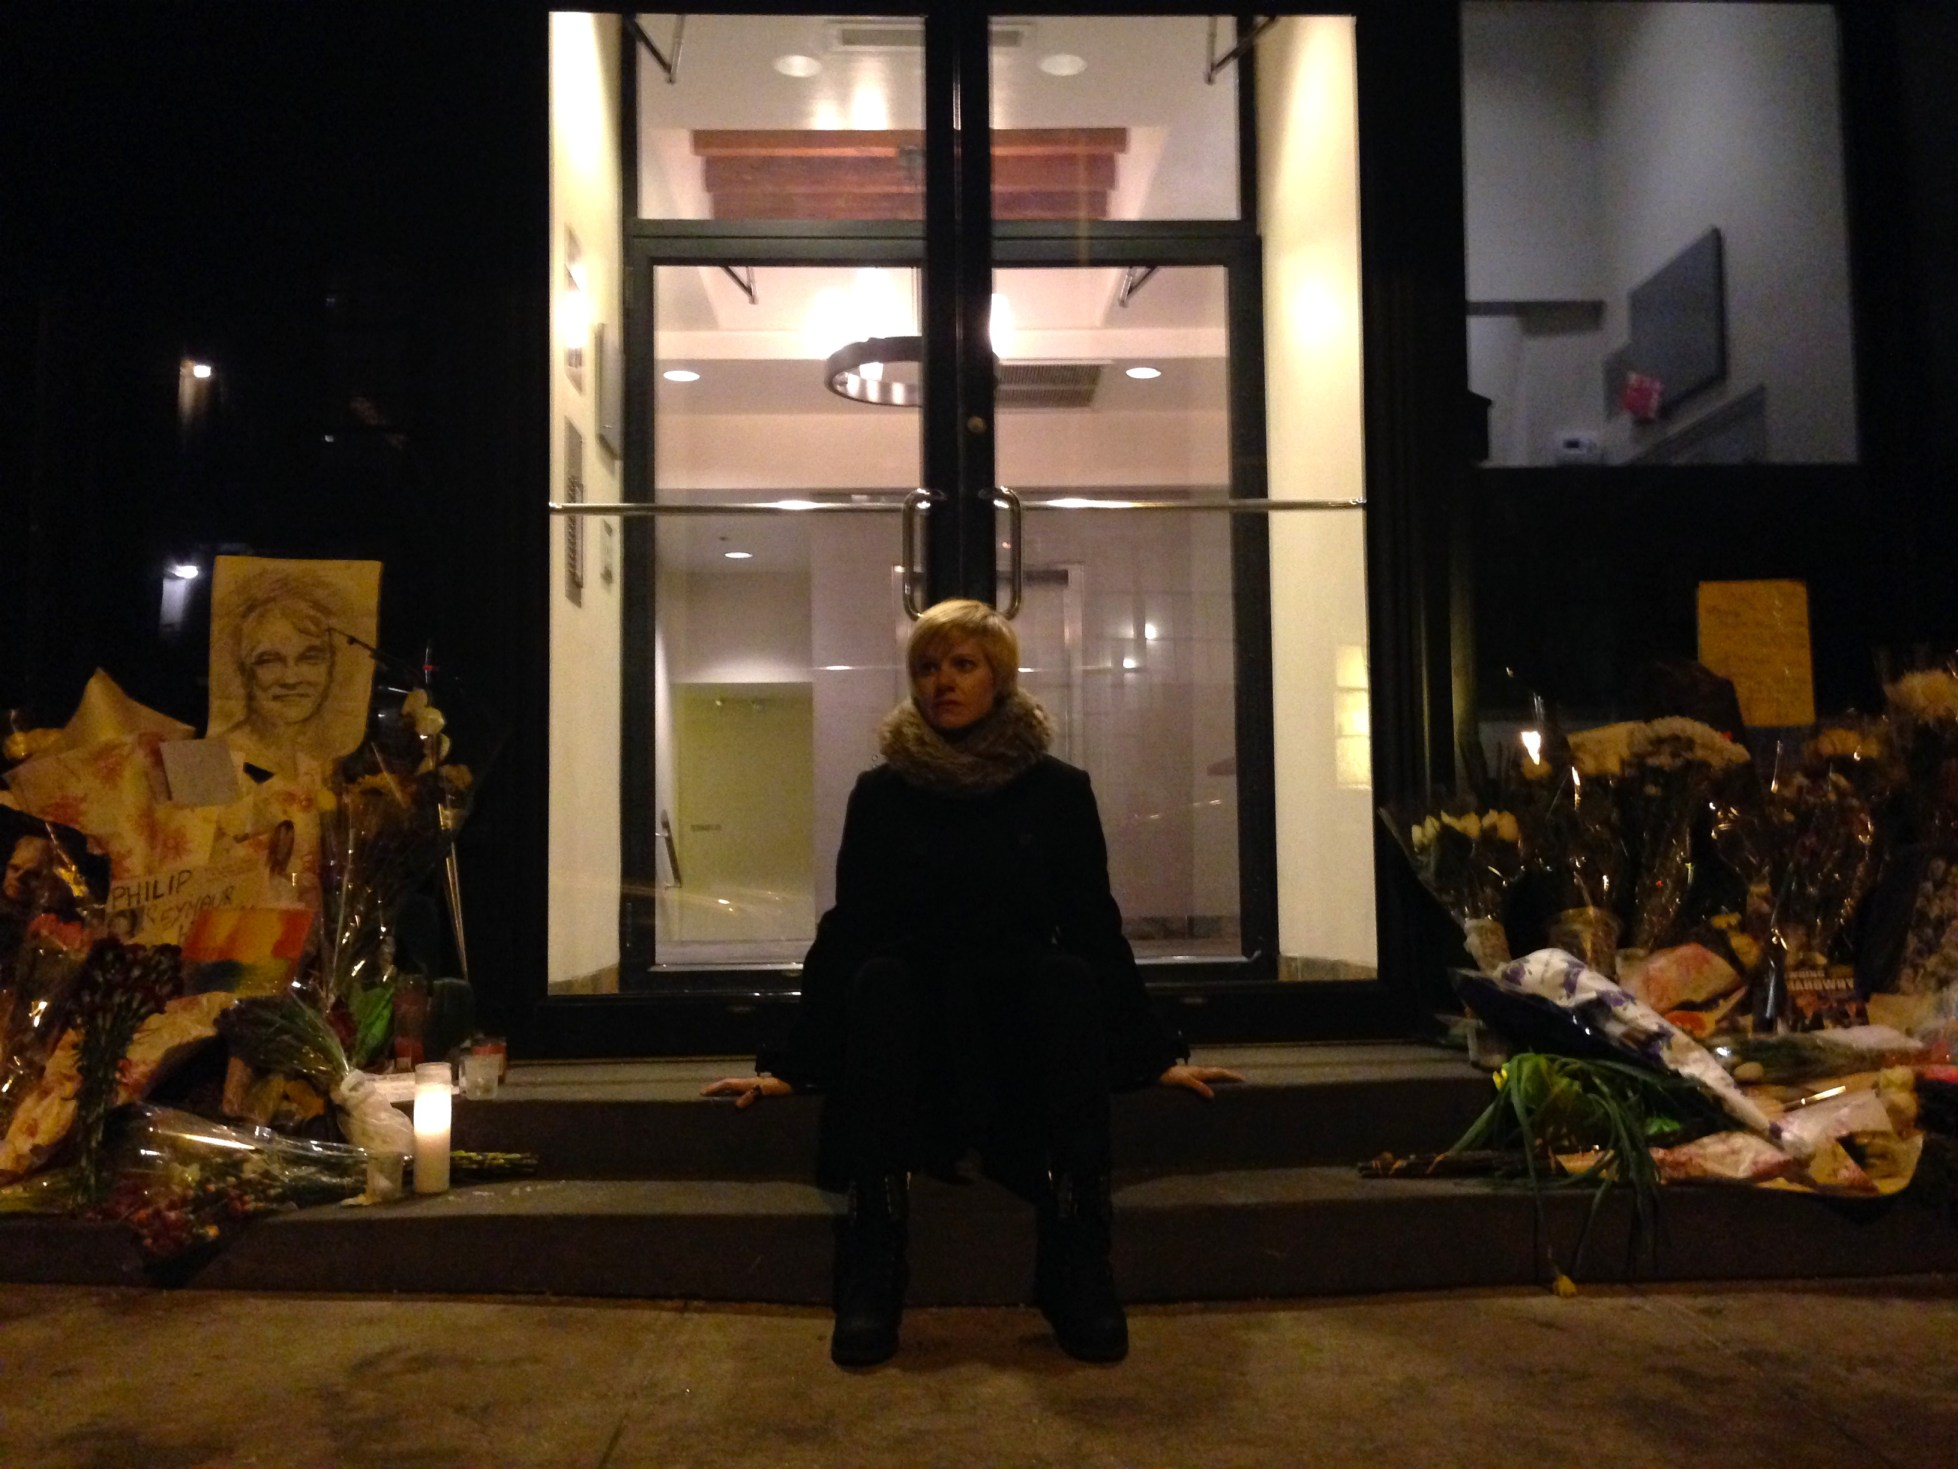 One week later, Editor and author of ETTD Katy Diamond Hamer in front of the Hoffman residence in Greenwich Village, Photograph by Oliver Warden, 2014